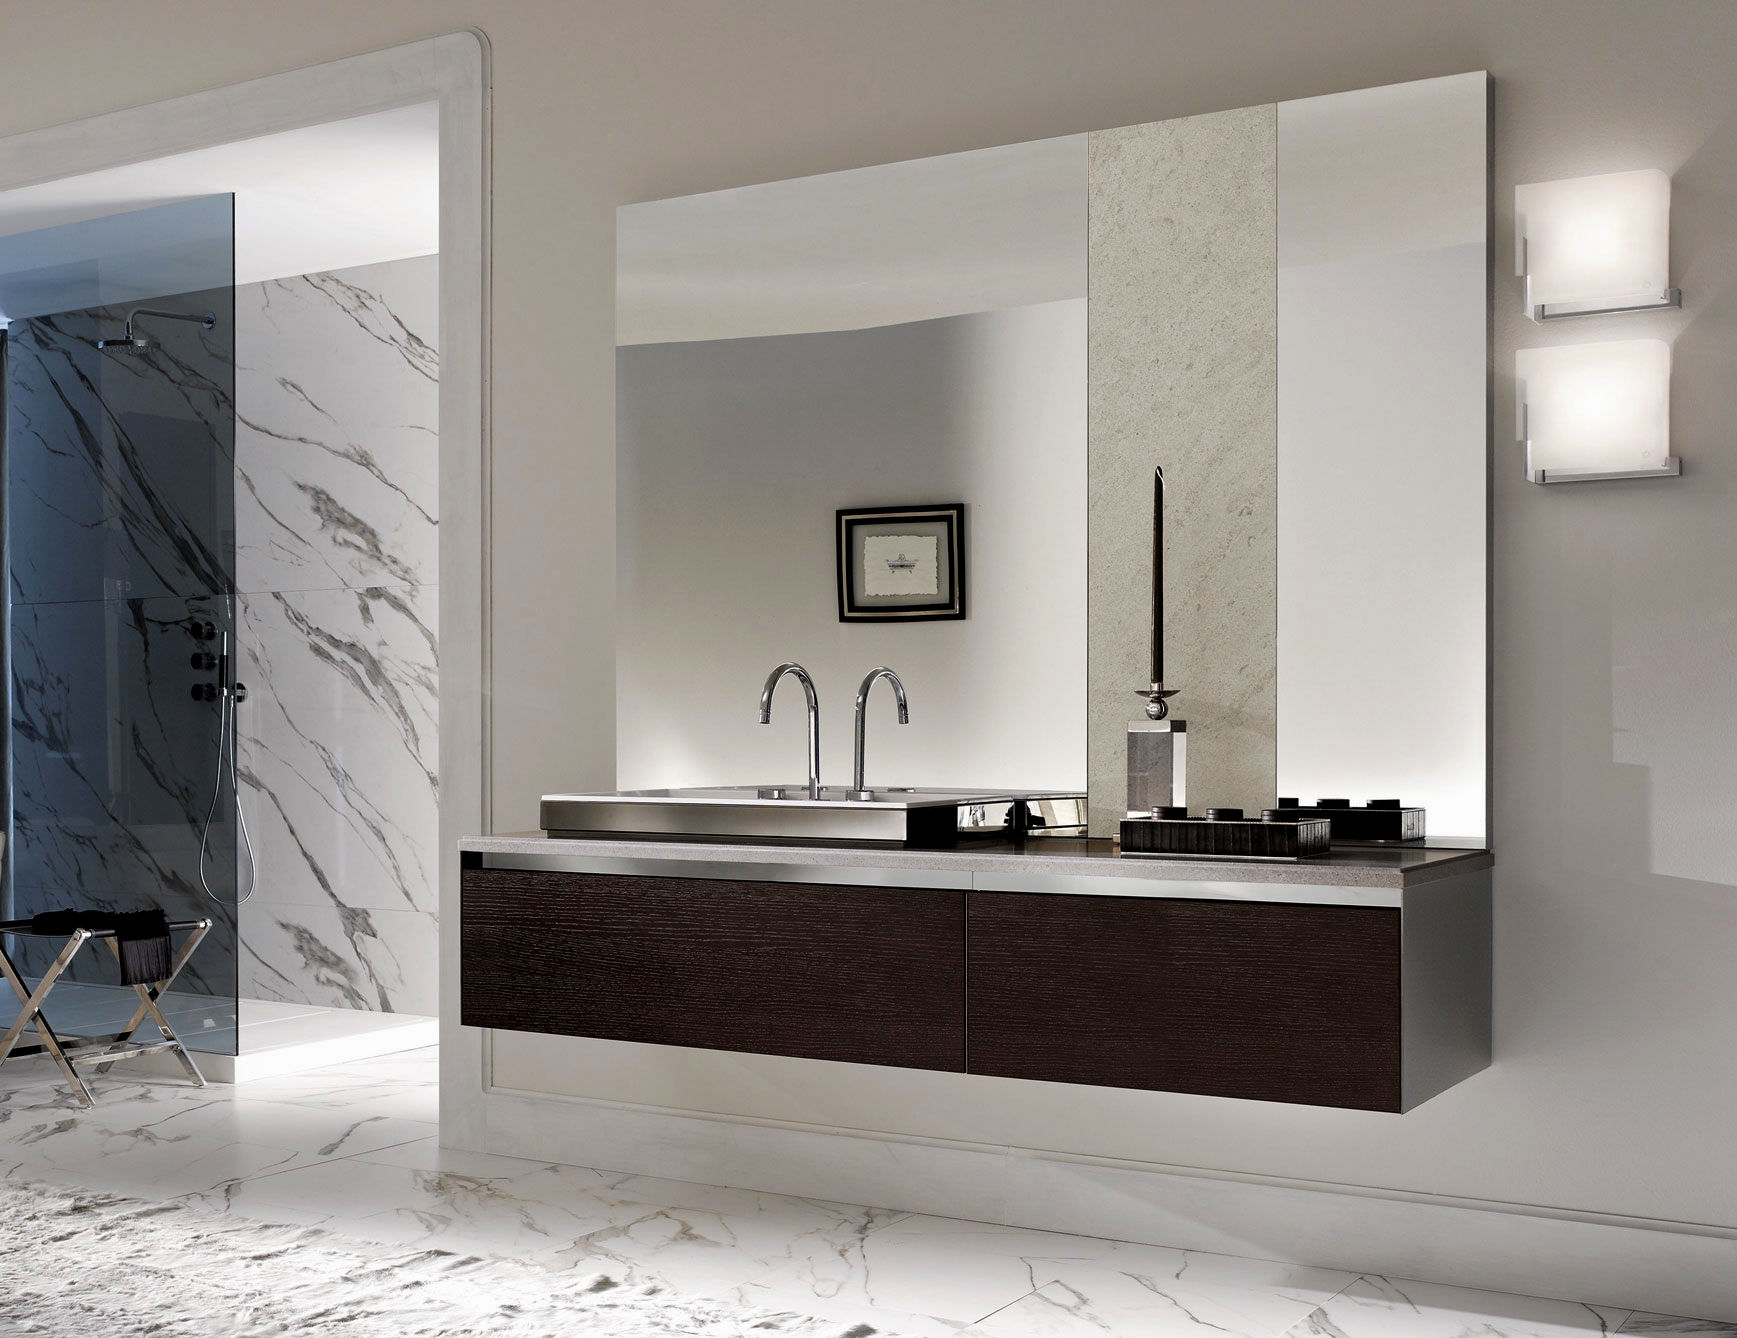 new luxury bathroom faucets picture-Excellent Luxury Bathroom Faucets Model